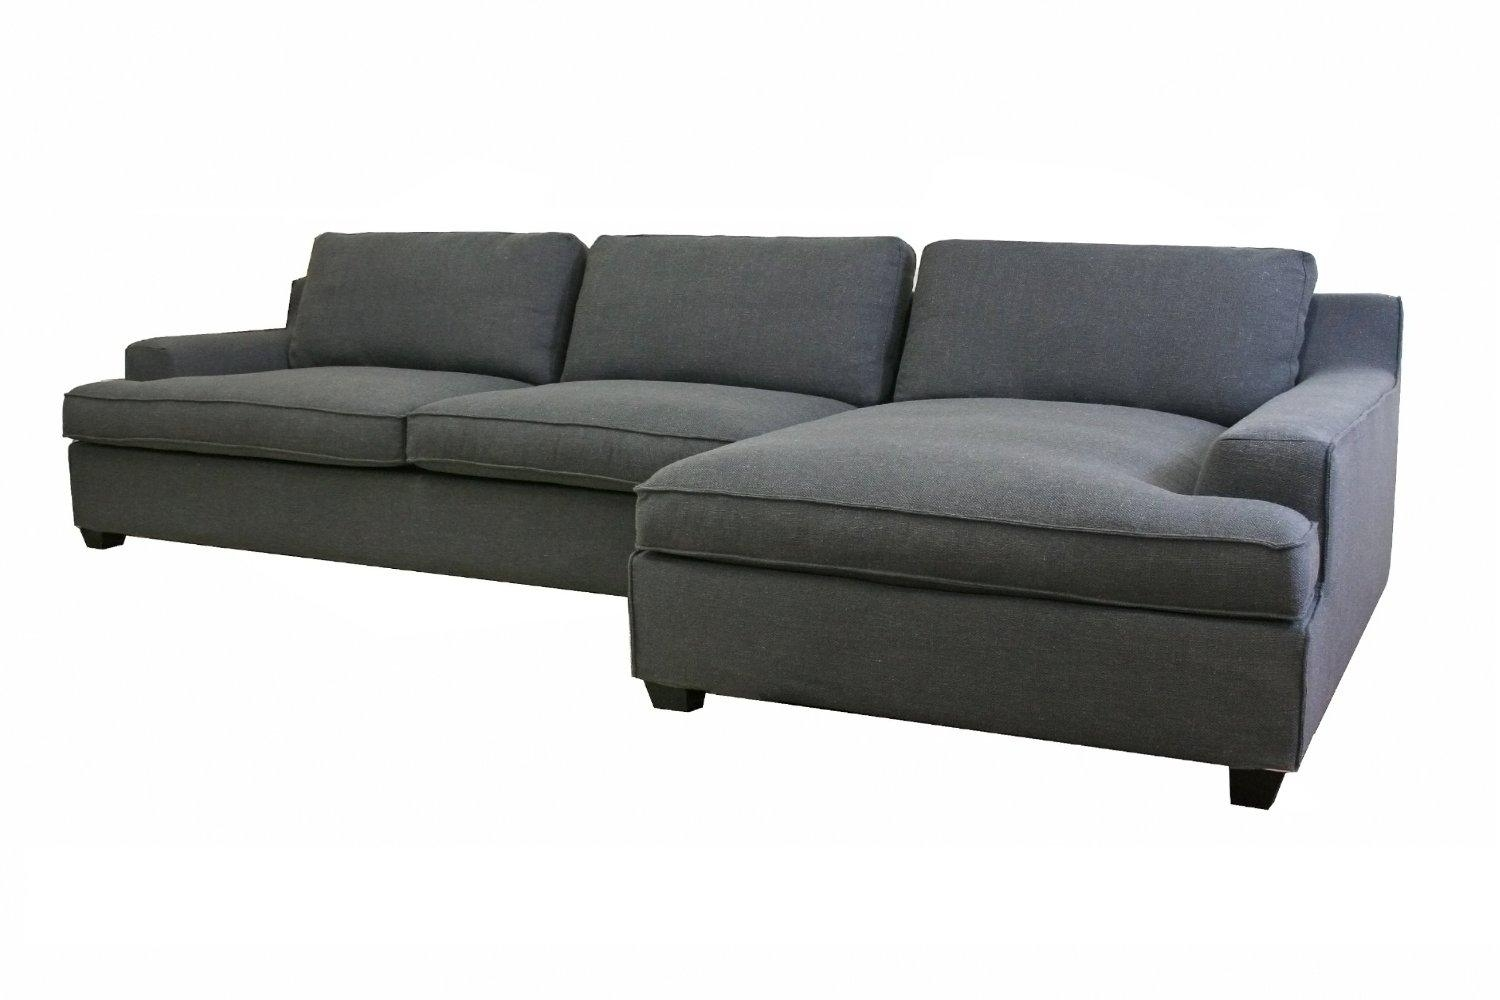 Sofas Center : Cheapestrey Sofa Corner In Fabric Knebworth Within Small Grey Sofas (Image 14 of 20)